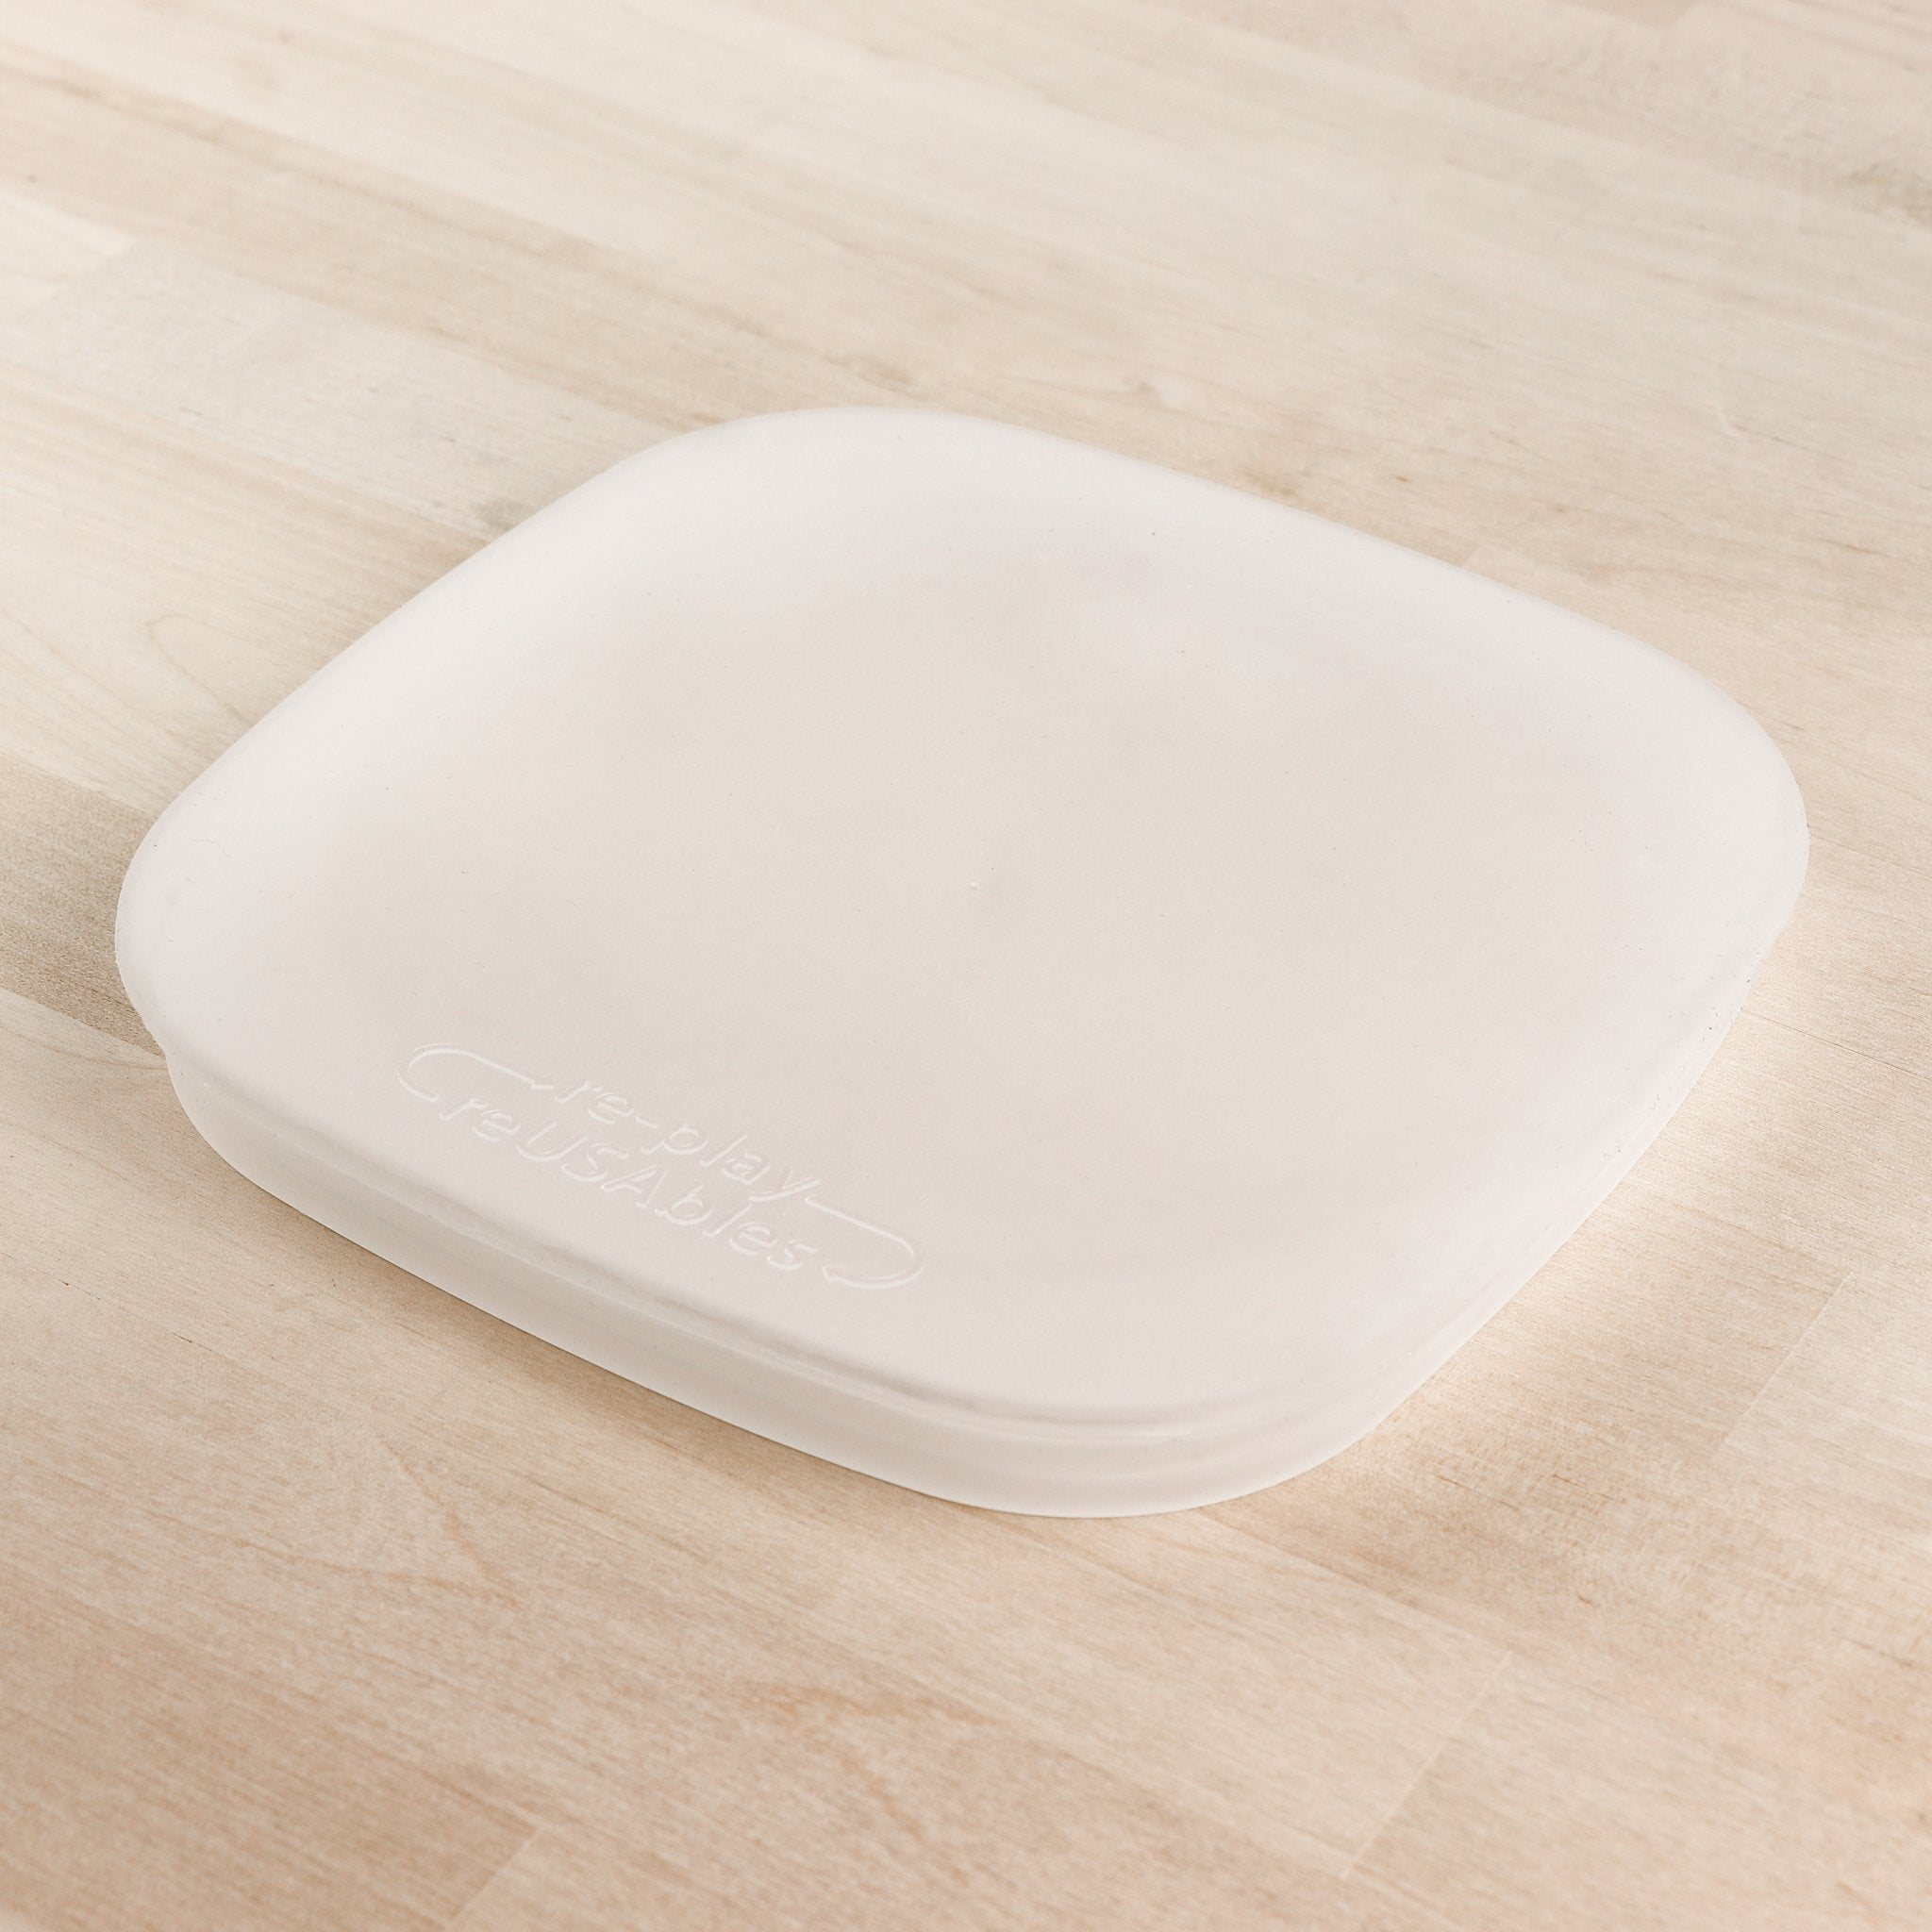 "Re-Play - 7"" Divided/Flat Plate Silicone Lid All Things Being Eco"